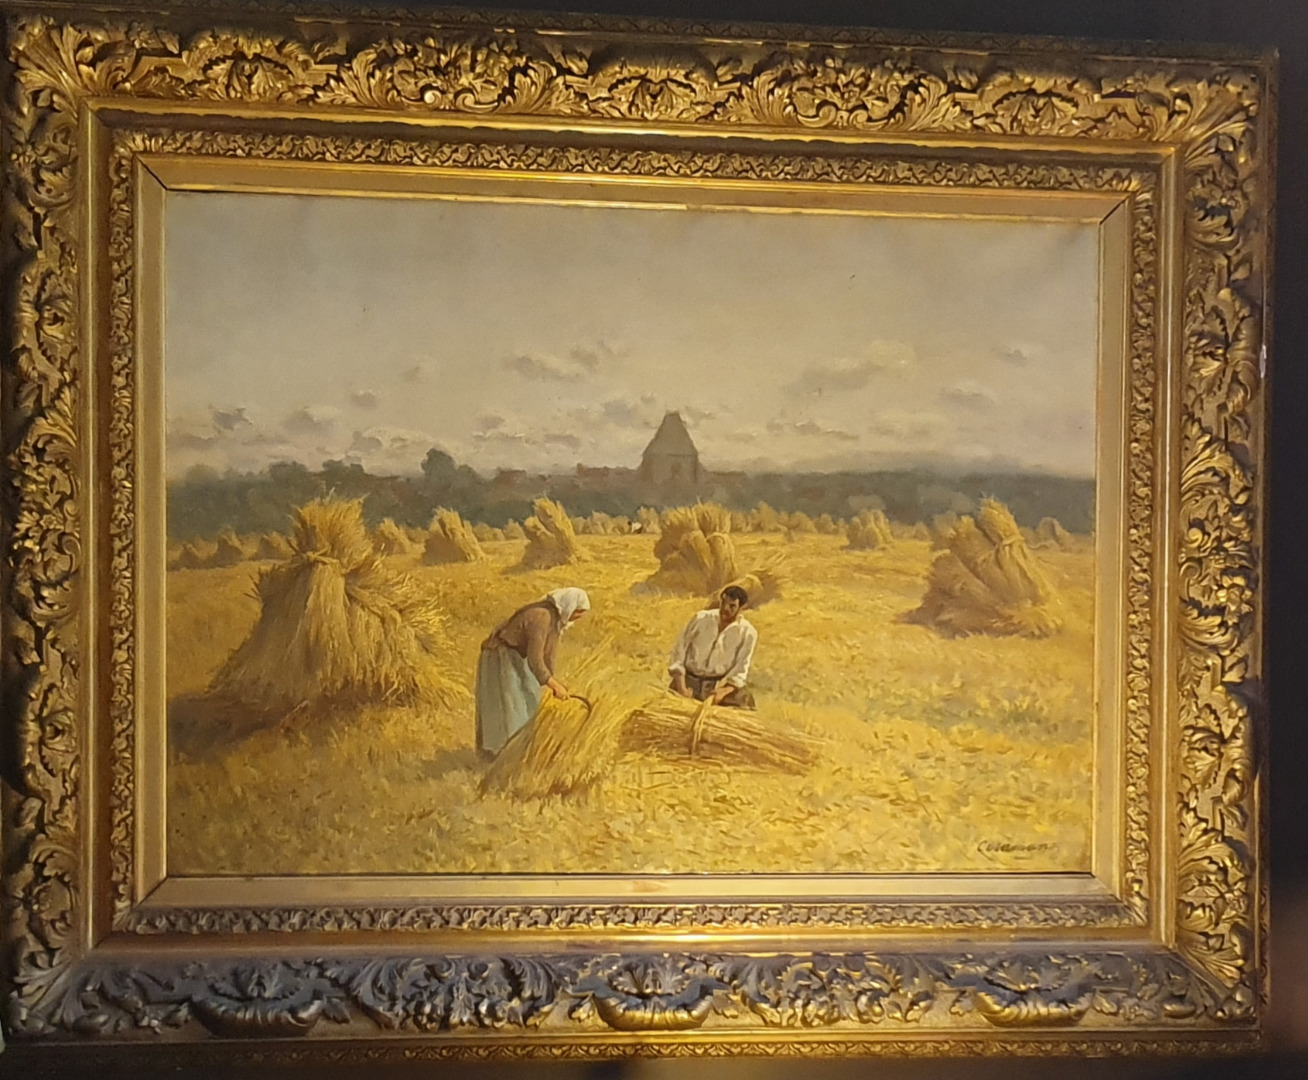 OIL ON CANVAS signed by Charles Ferdinand Ceramano